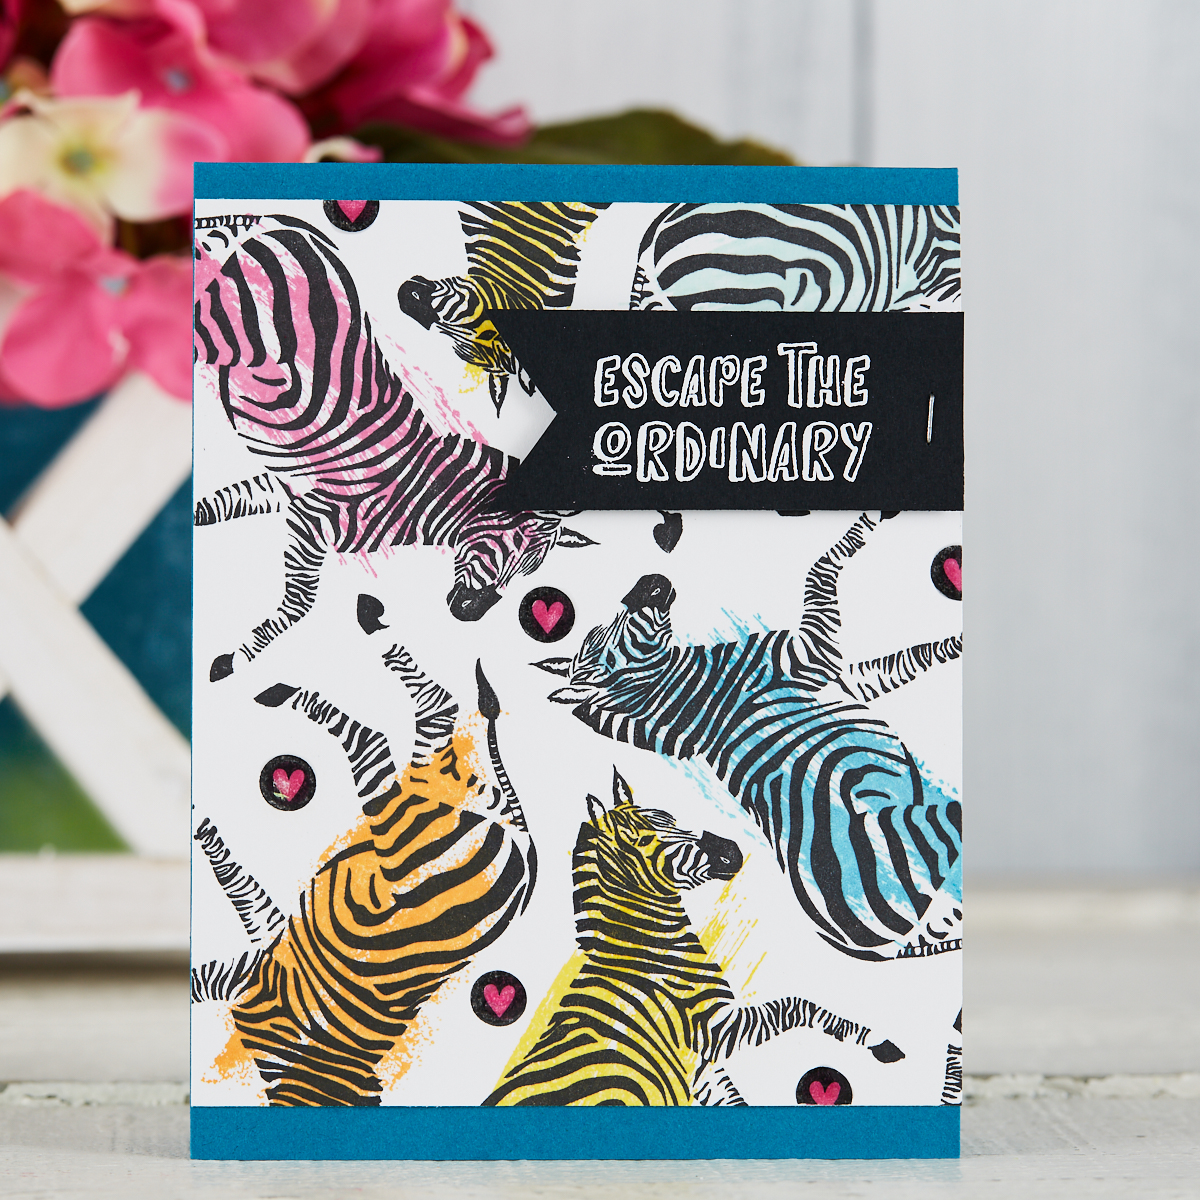 Escape the Ordinary card with rubber stamped zebras in bright colors created by Laura Williams with Fun Stampers Journey #funstampersjourney #cardmaking